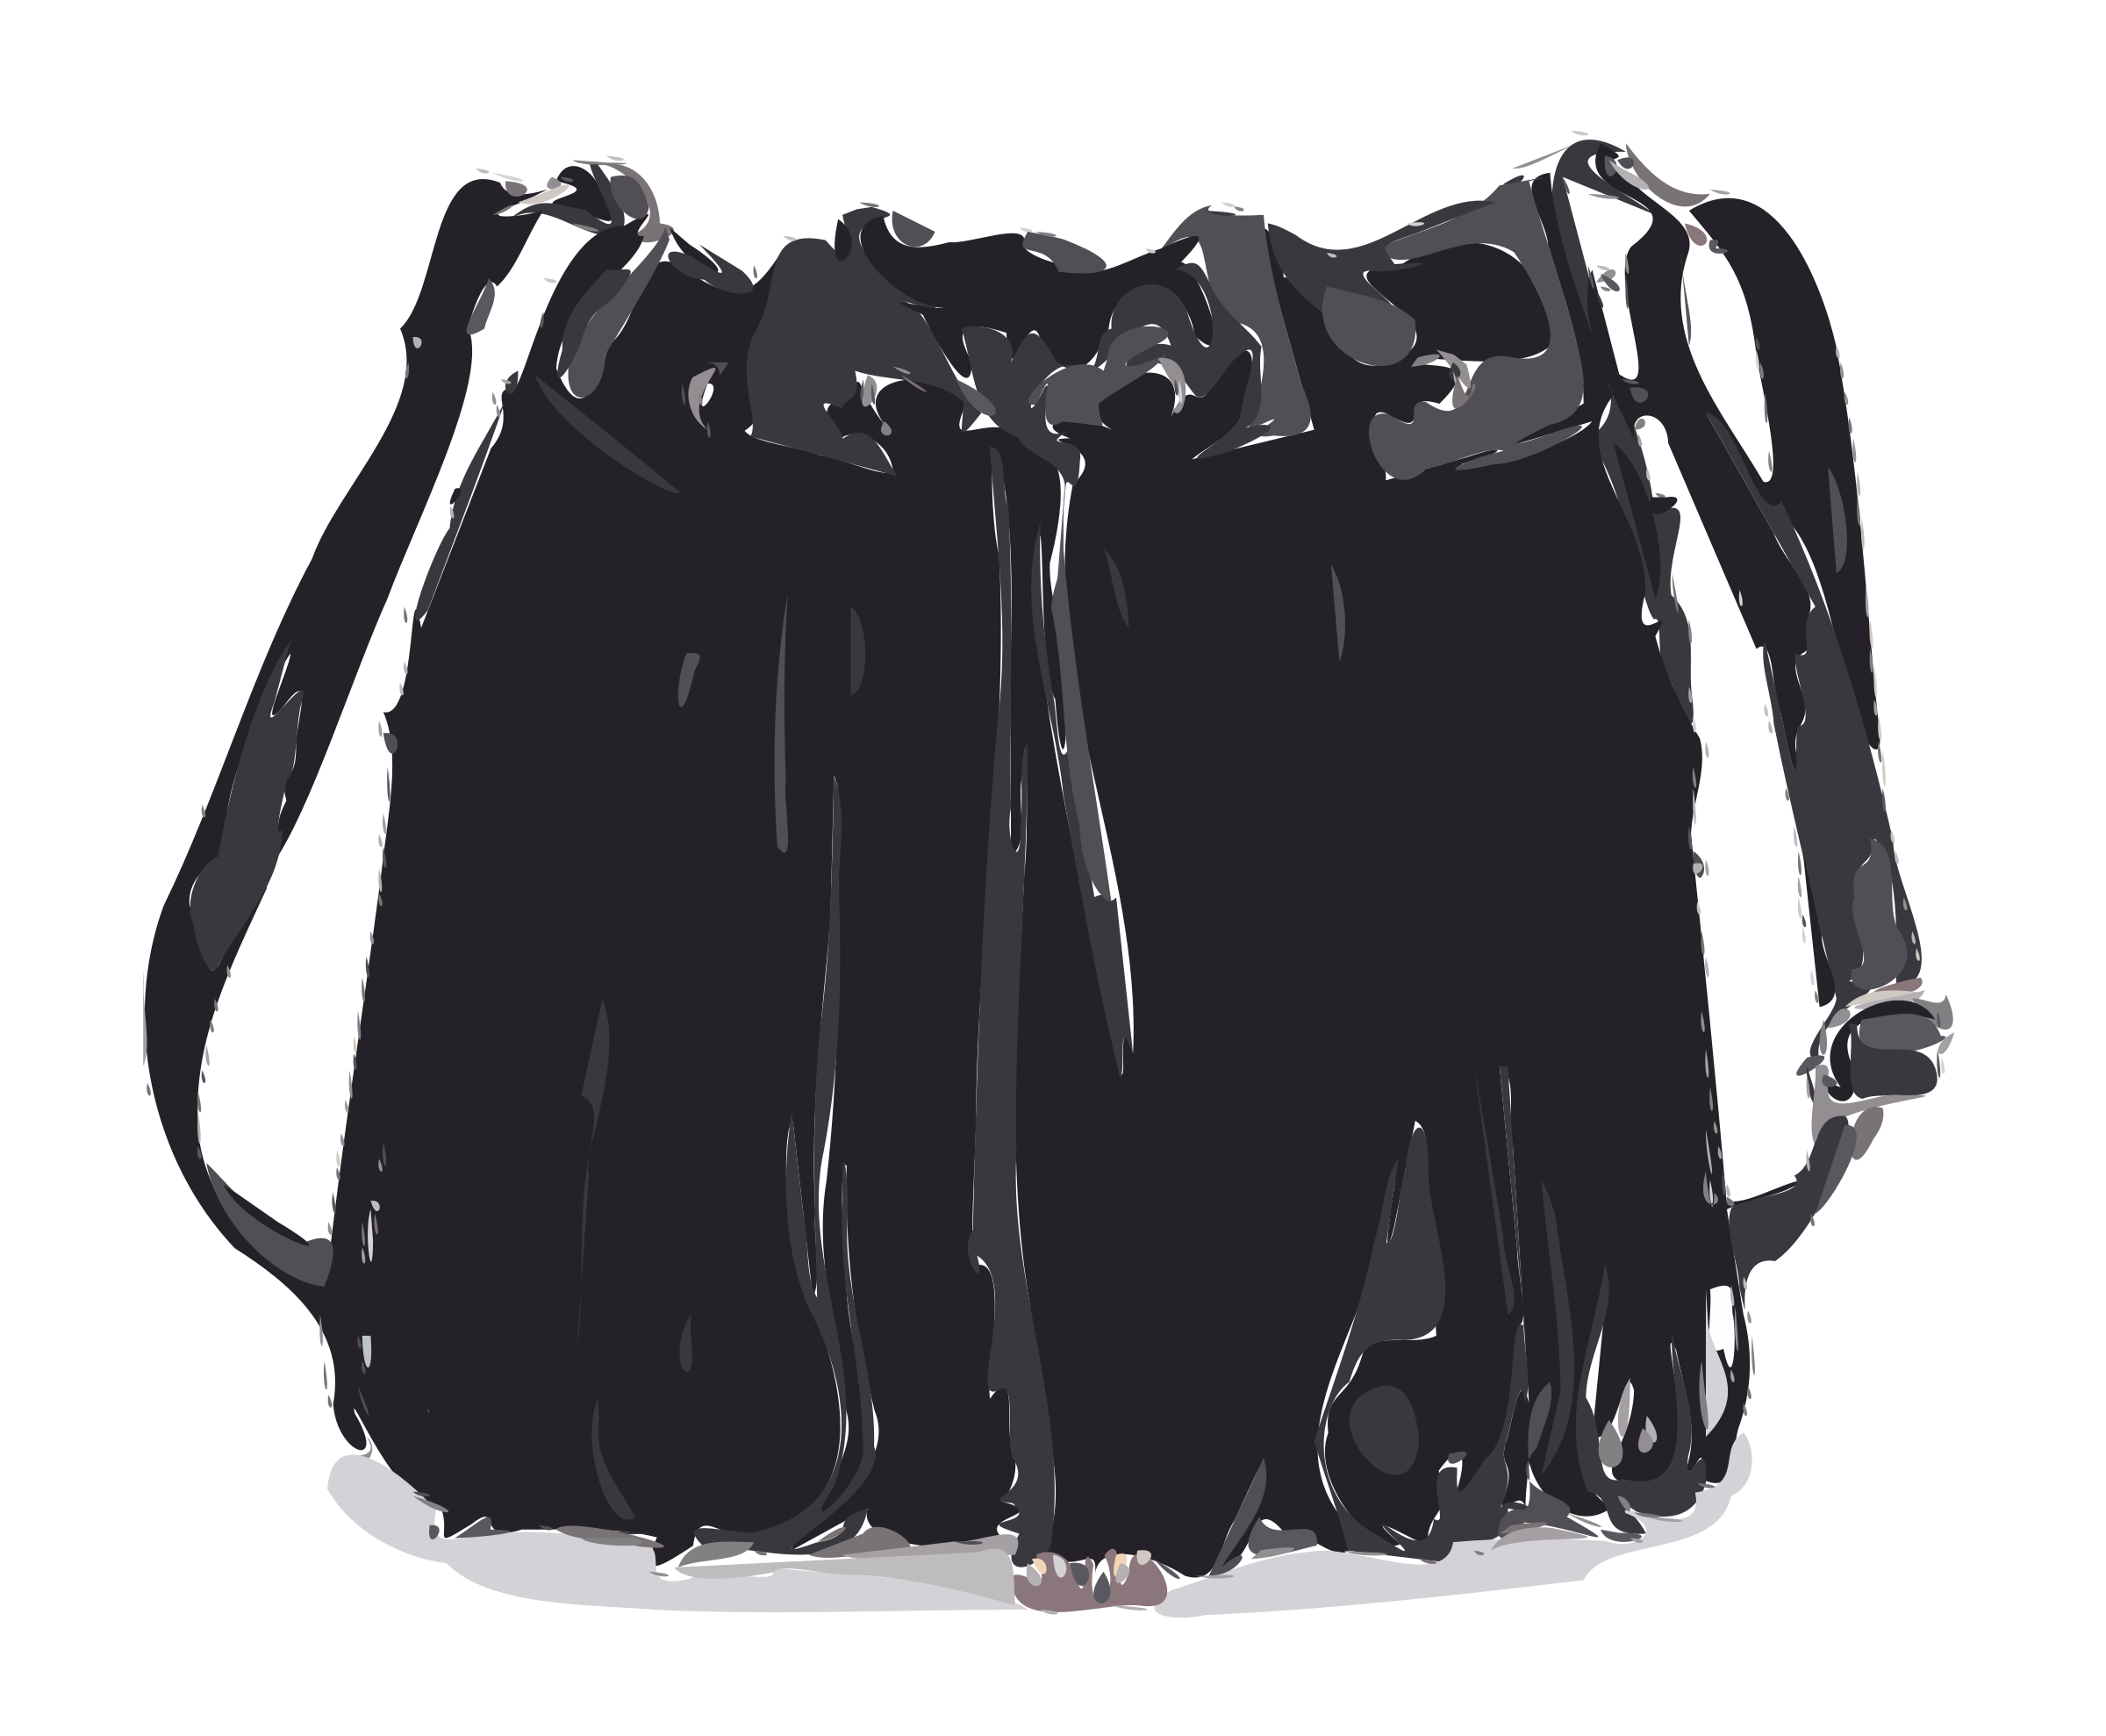 Tassled leather bag no. Luggage clipart black and white